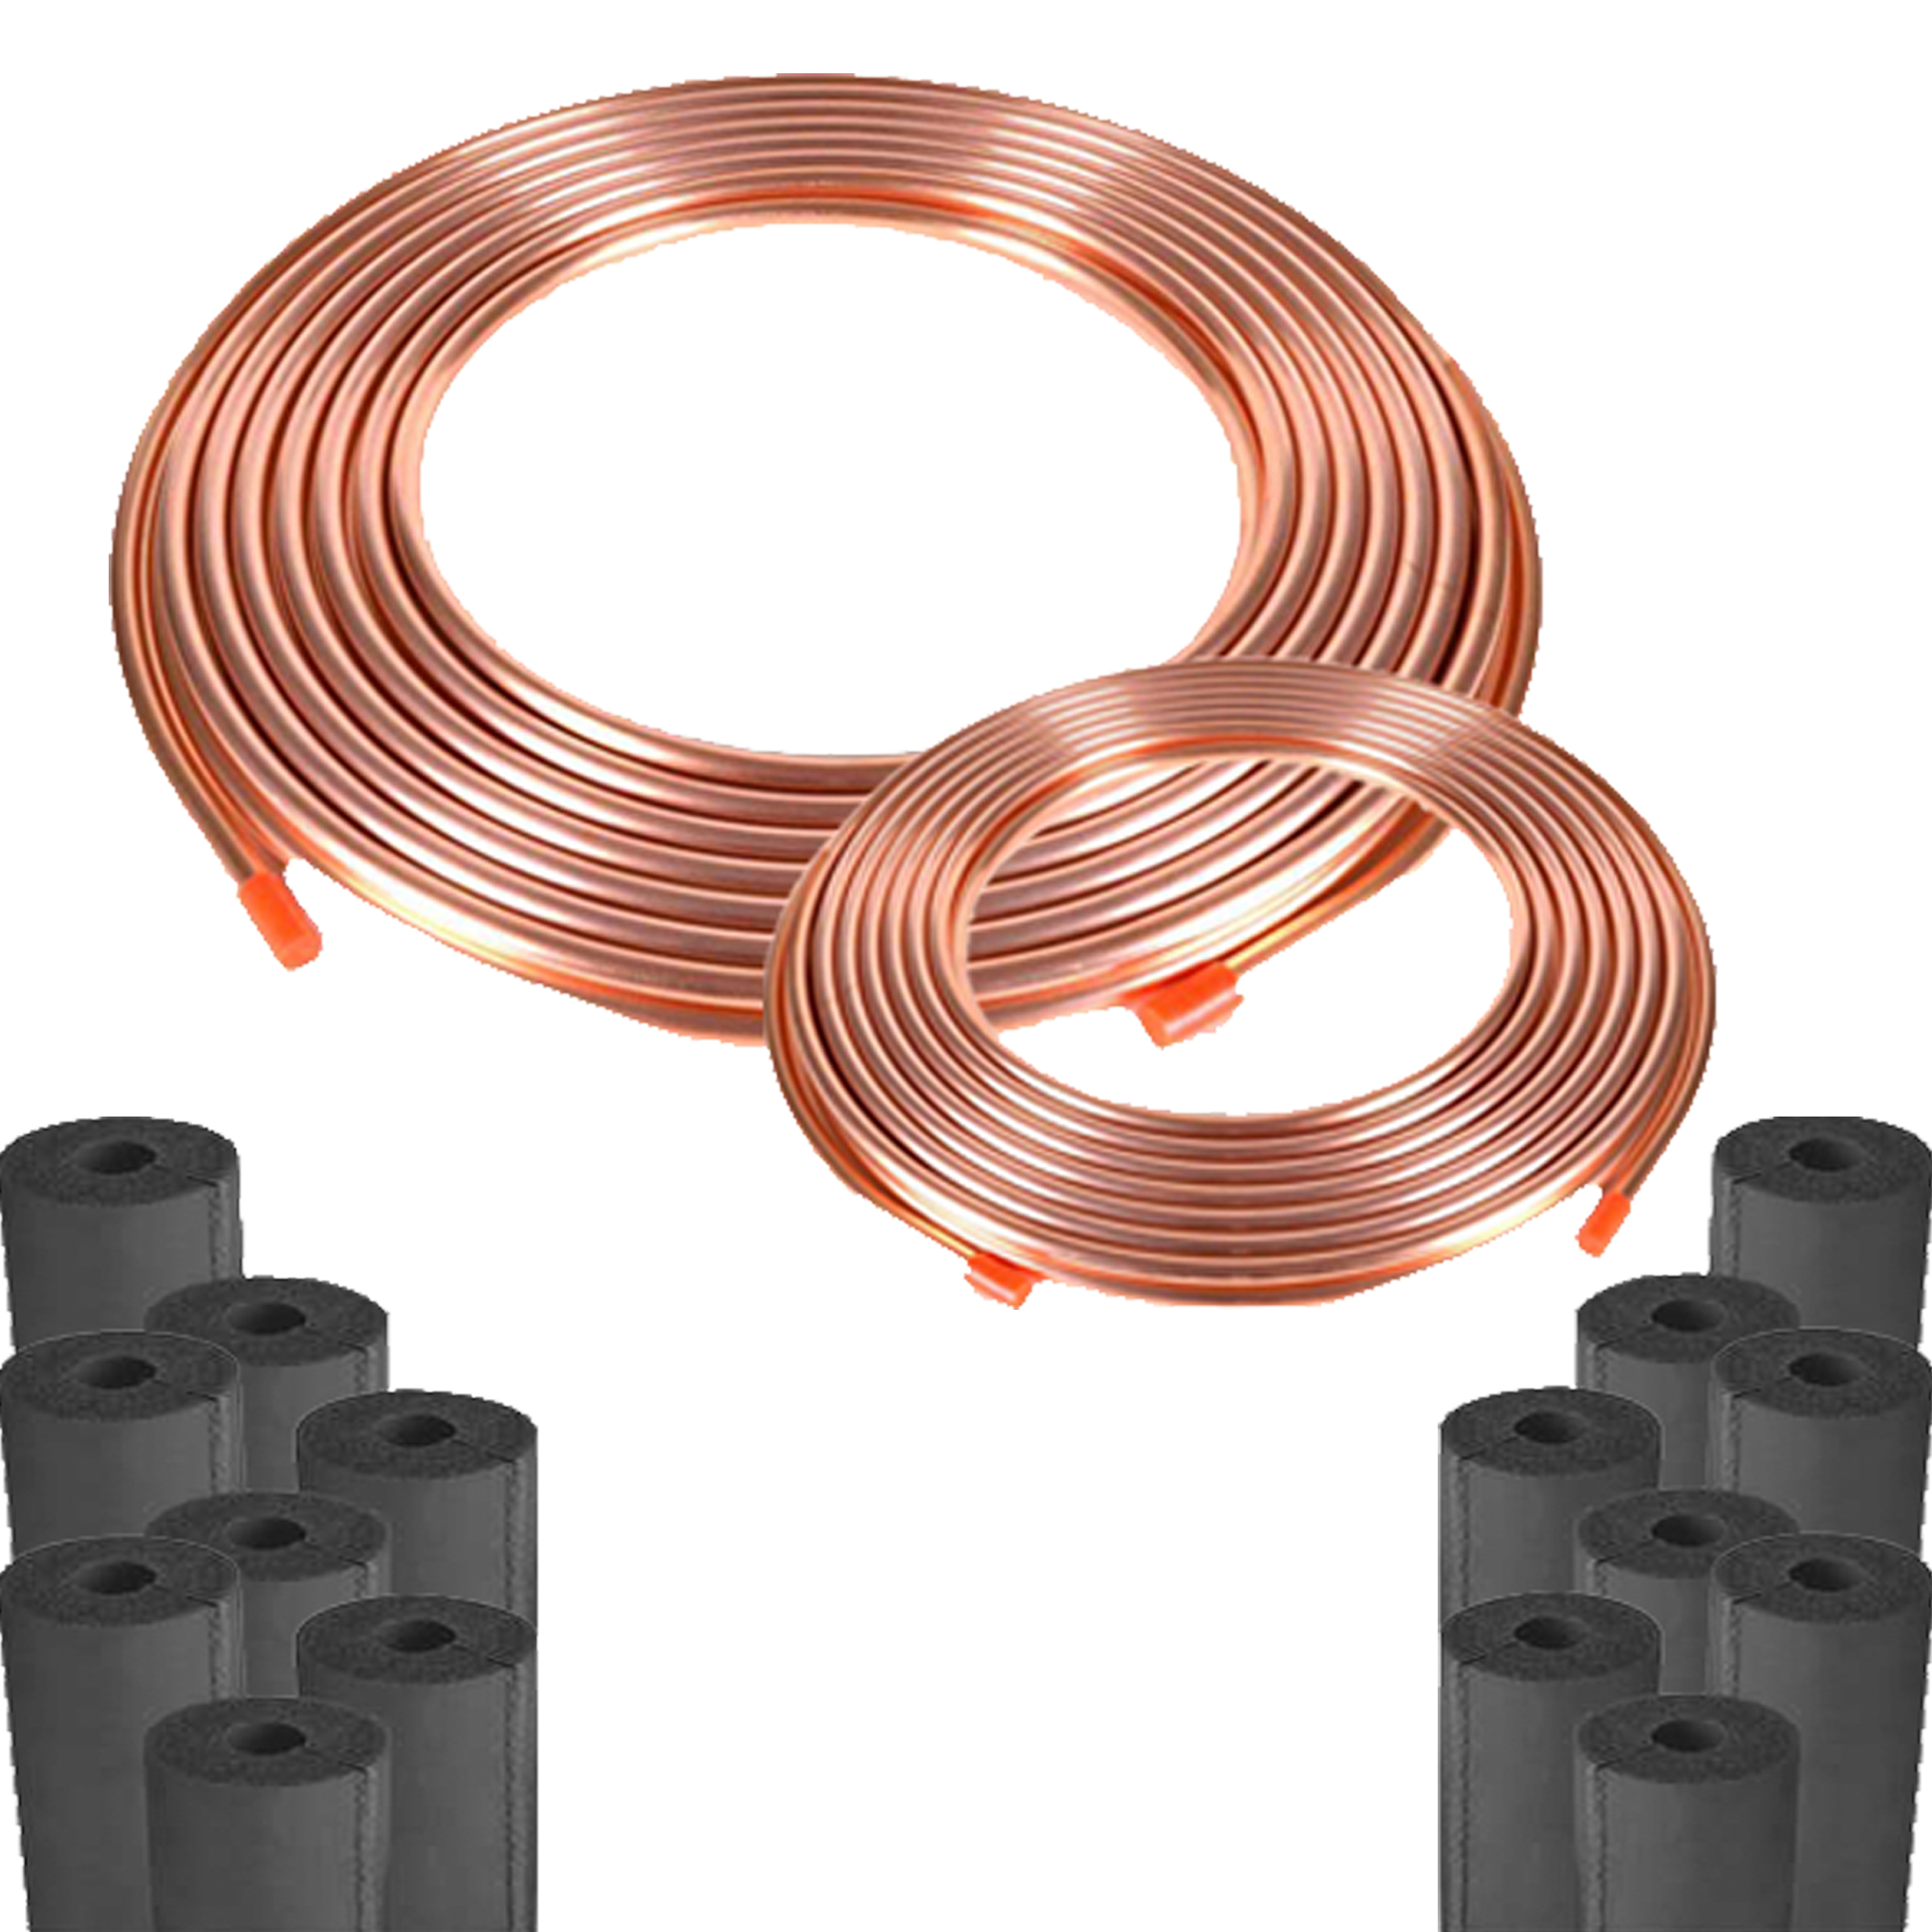 Copper Line Set 100 Feet 3 4 8 Bard Condenser Fan Wiring Diagram Soft Rolled With Thickness Rubbertex Insulation Black This Is Not Pre Charged And Ideal For Freon Lines Between Air